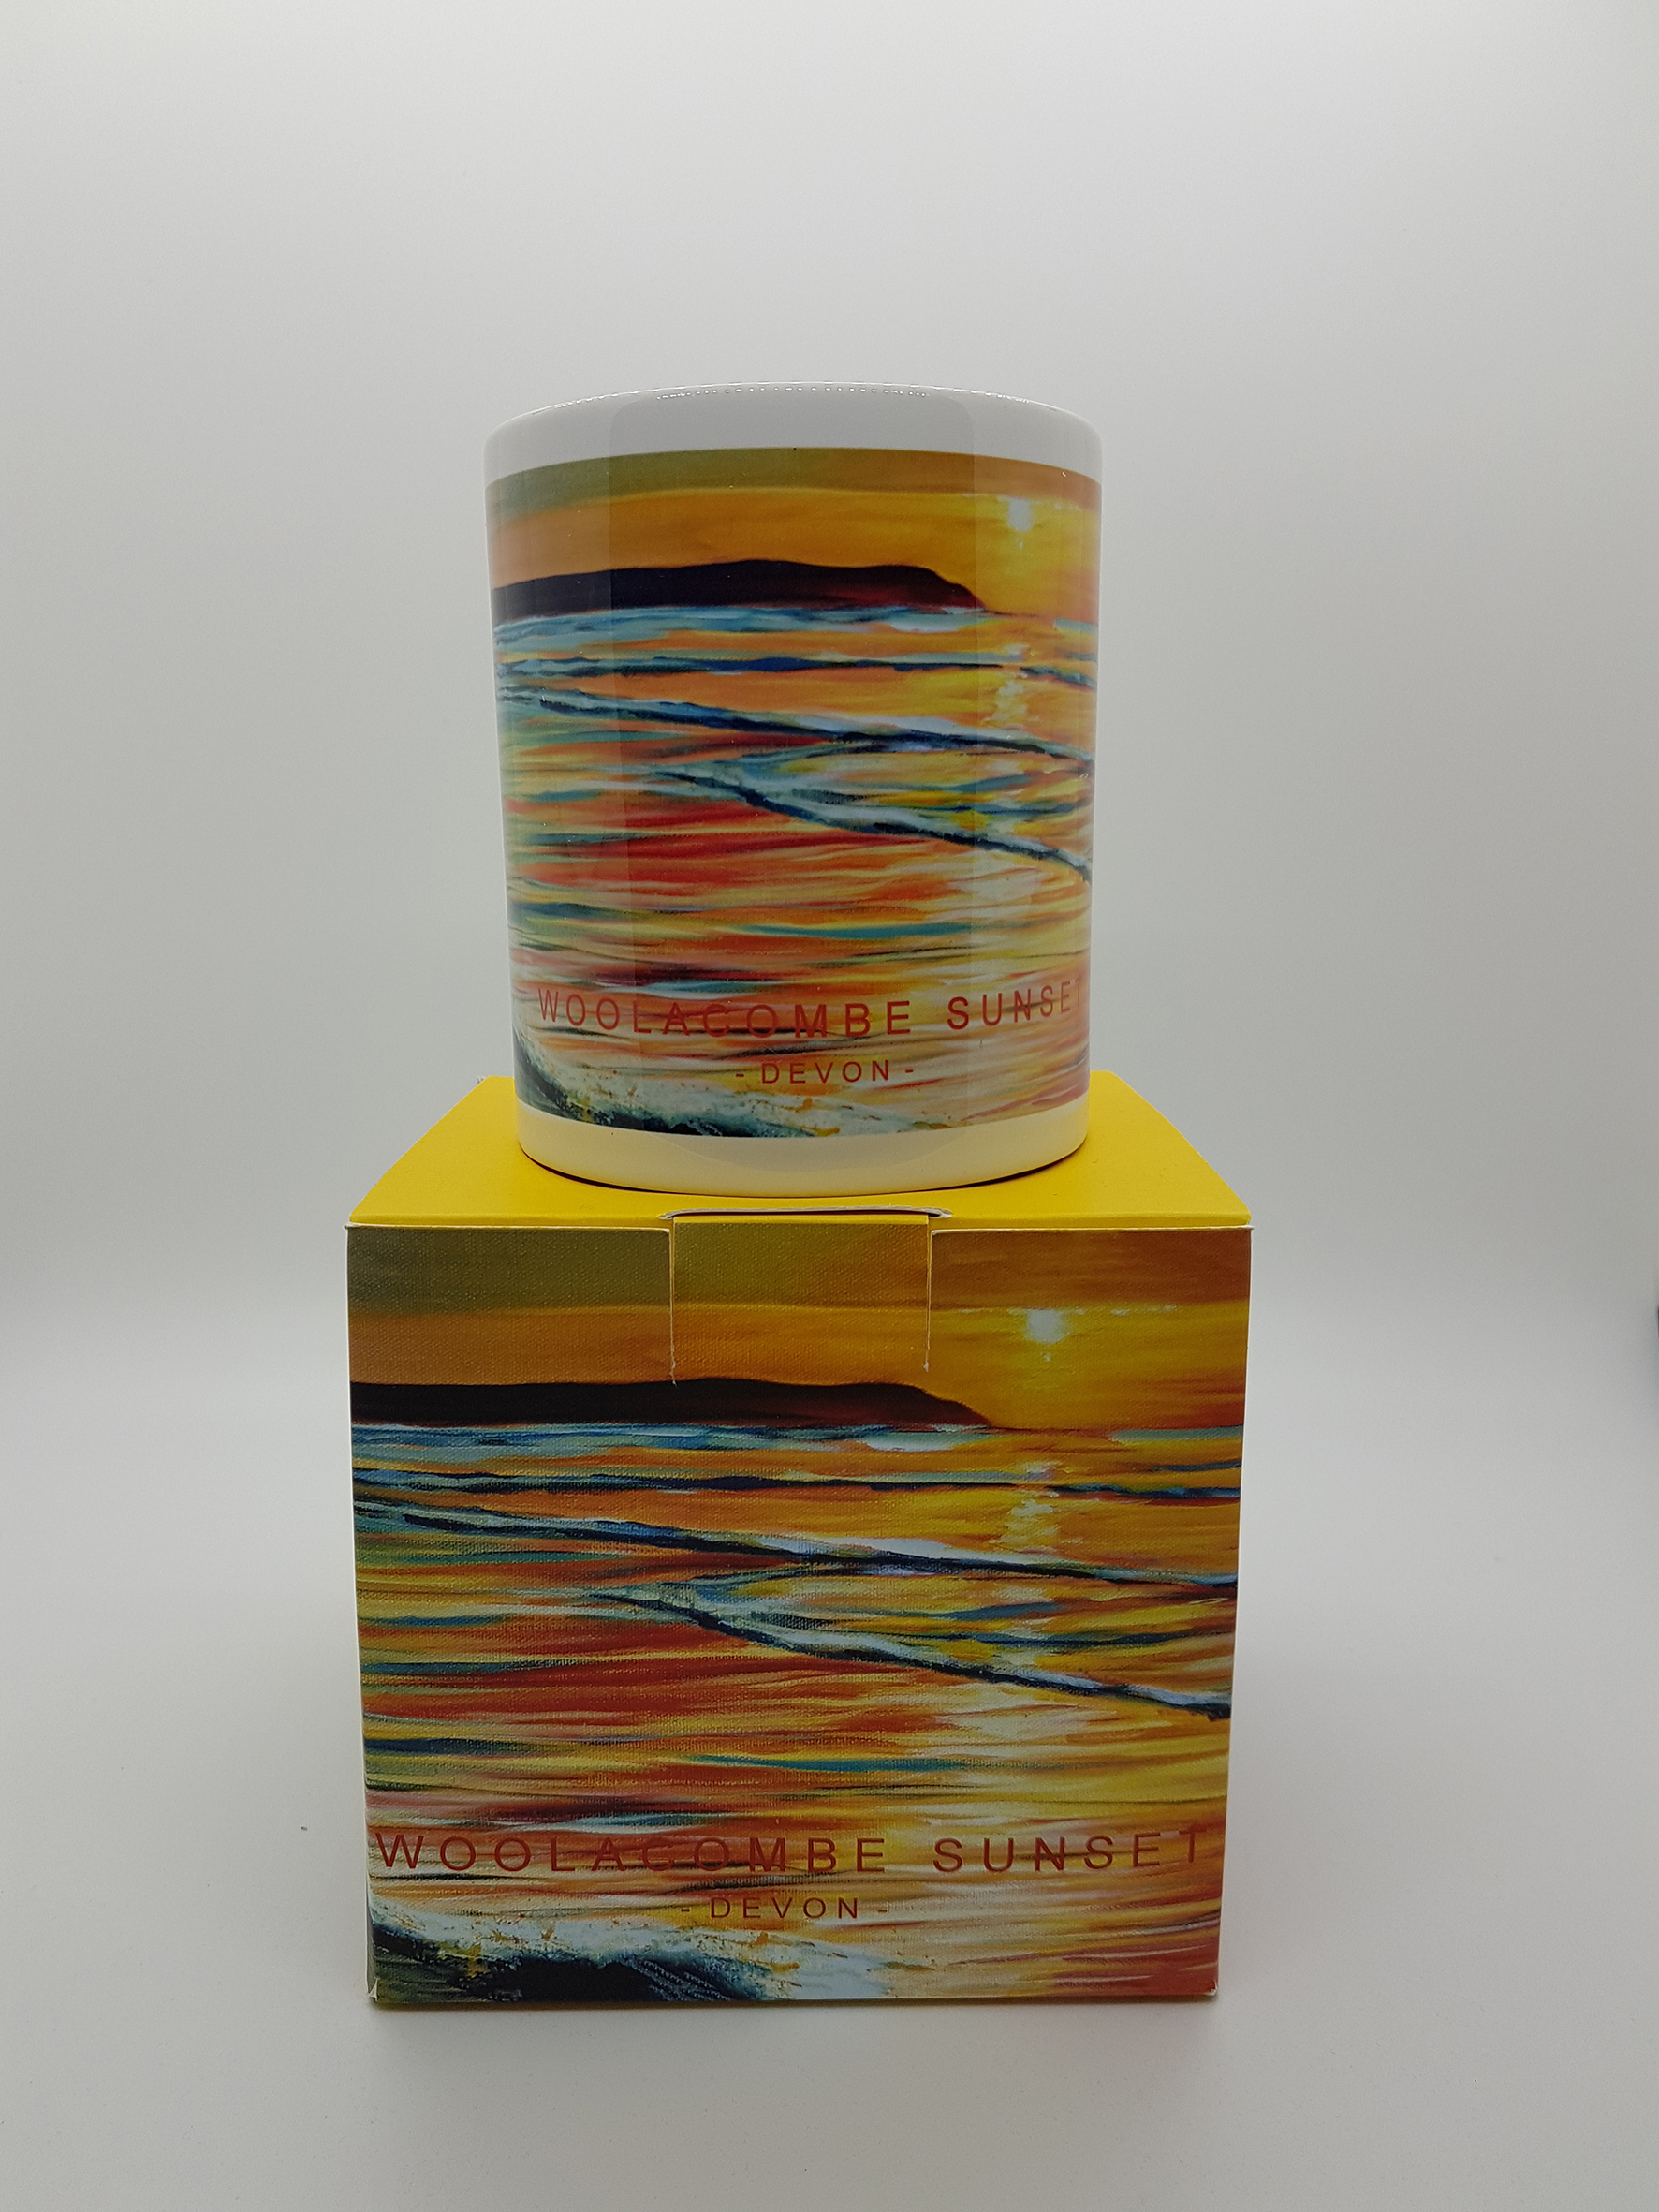 Mug featuring Woolacombe sunset